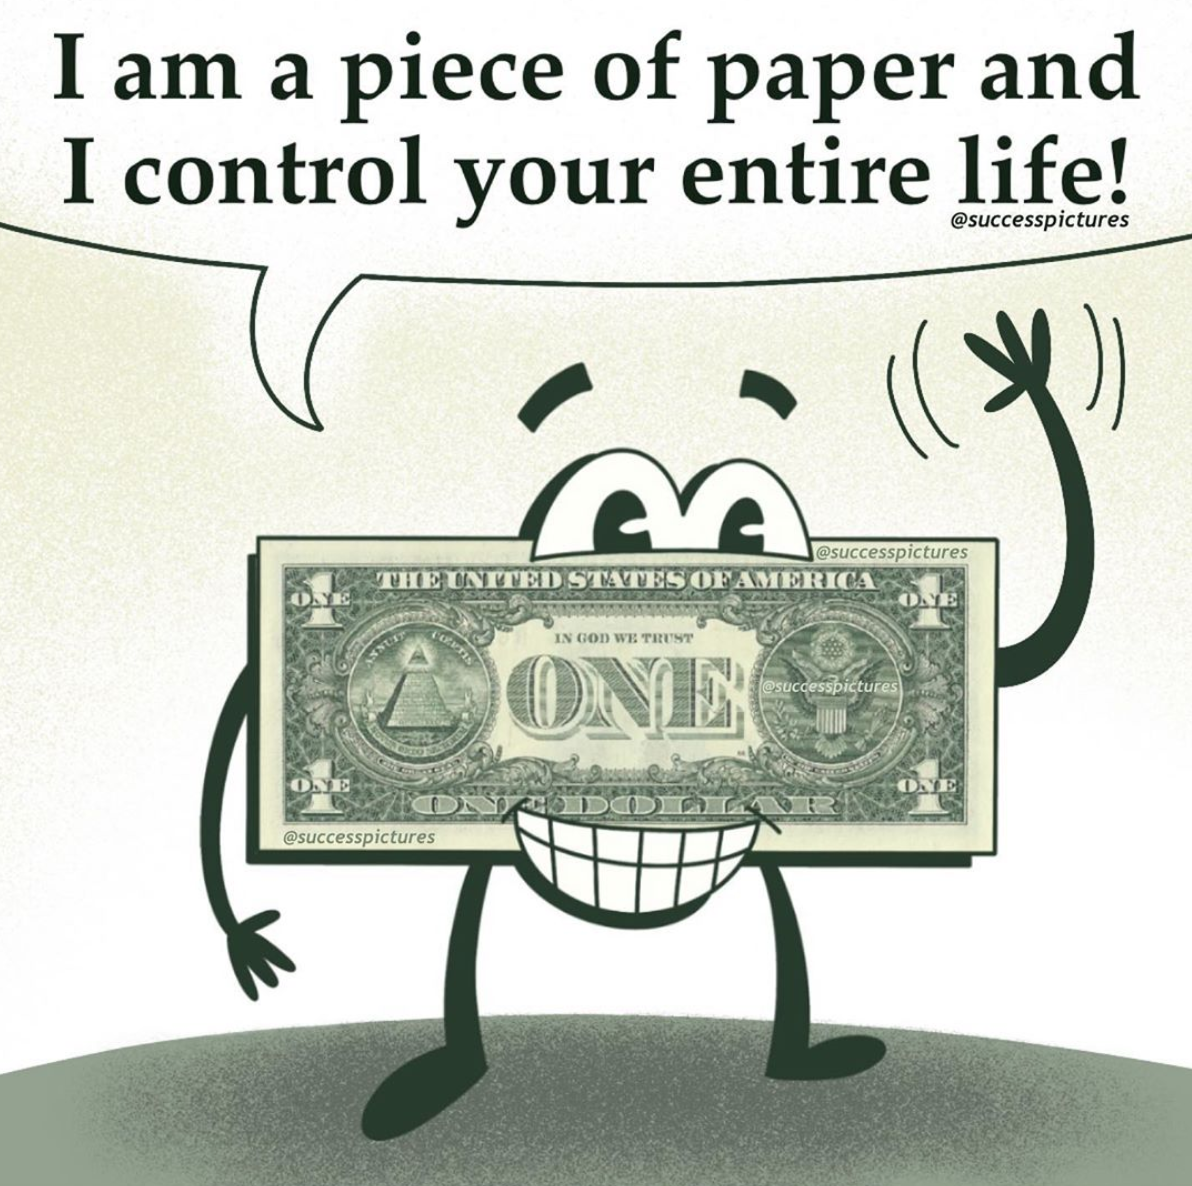 [Image] Don't let a simple piece of paper control your life